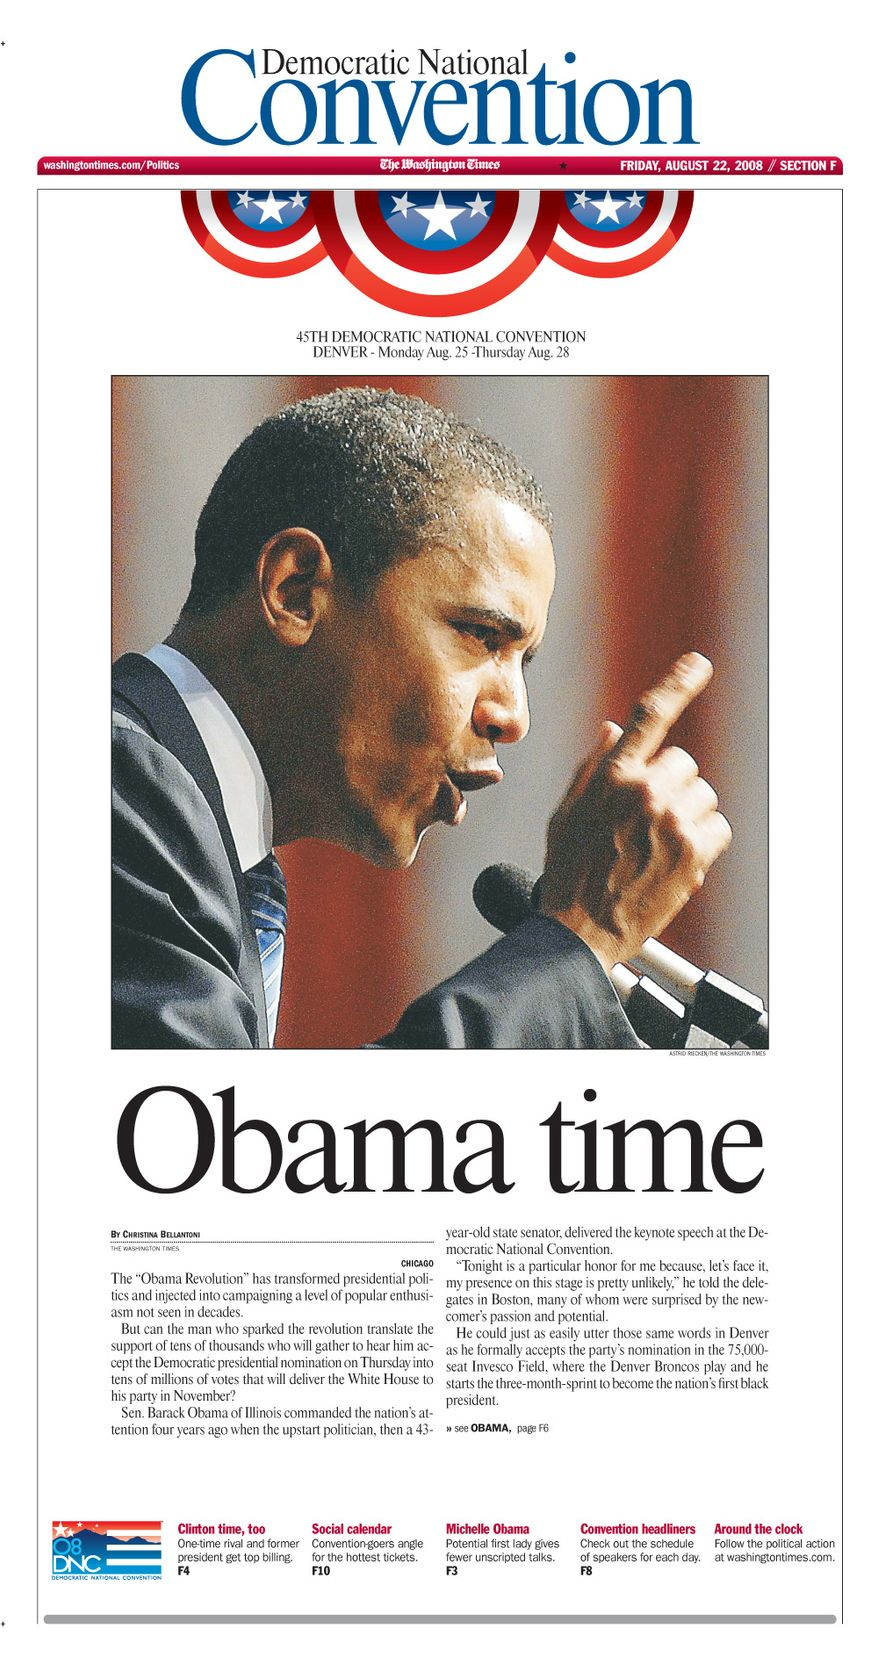 "The Washington Times - Page F1 - Friday, August 22, 2008 - ""Obama time"""